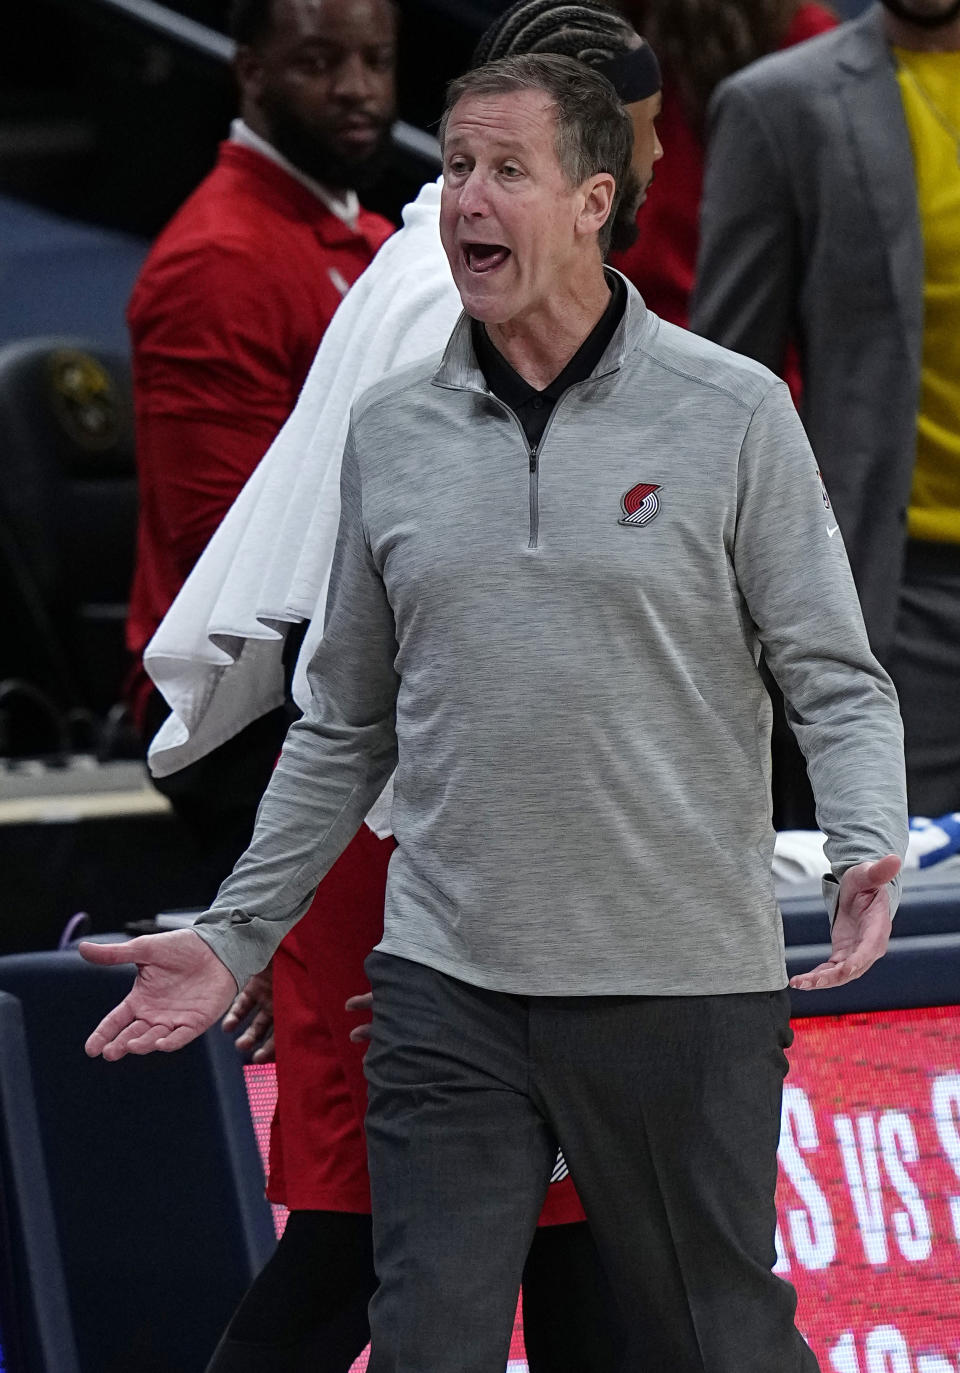 Portland Trail Blazers head coach Terry Stotts reacts to a missed call against the Denver Nuggets in the first half of Game 5 of a first-round NBA basketball playoff series Tuesday, June 1, 2021, in Denver. (AP Photo/Jack Dempsey)